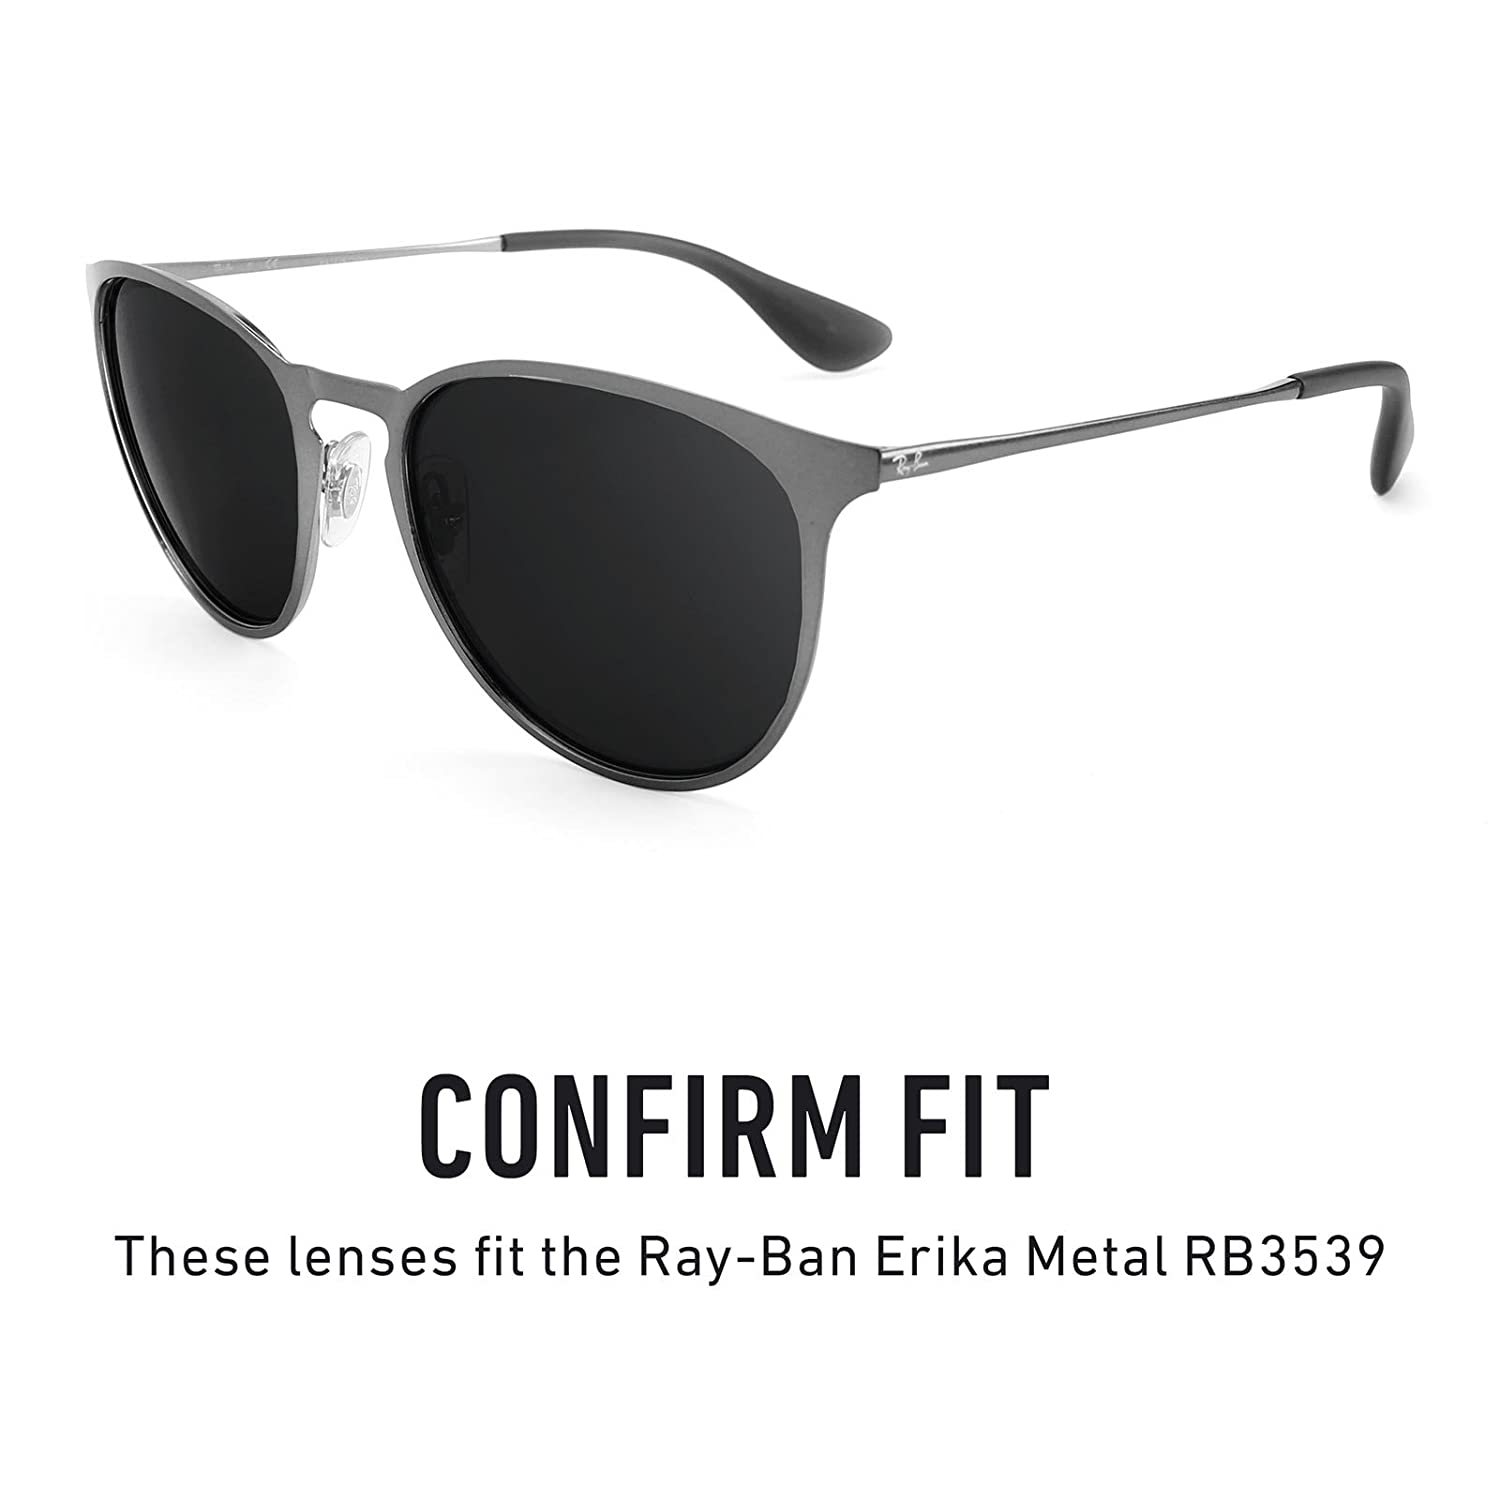 f46836ec629 Amazon.com  Revant Polarized Replacement Lenses for Ray-Ban Erika Metal  RB3539 Elite Black Chrome MirrorShield  Sports   Outdoors